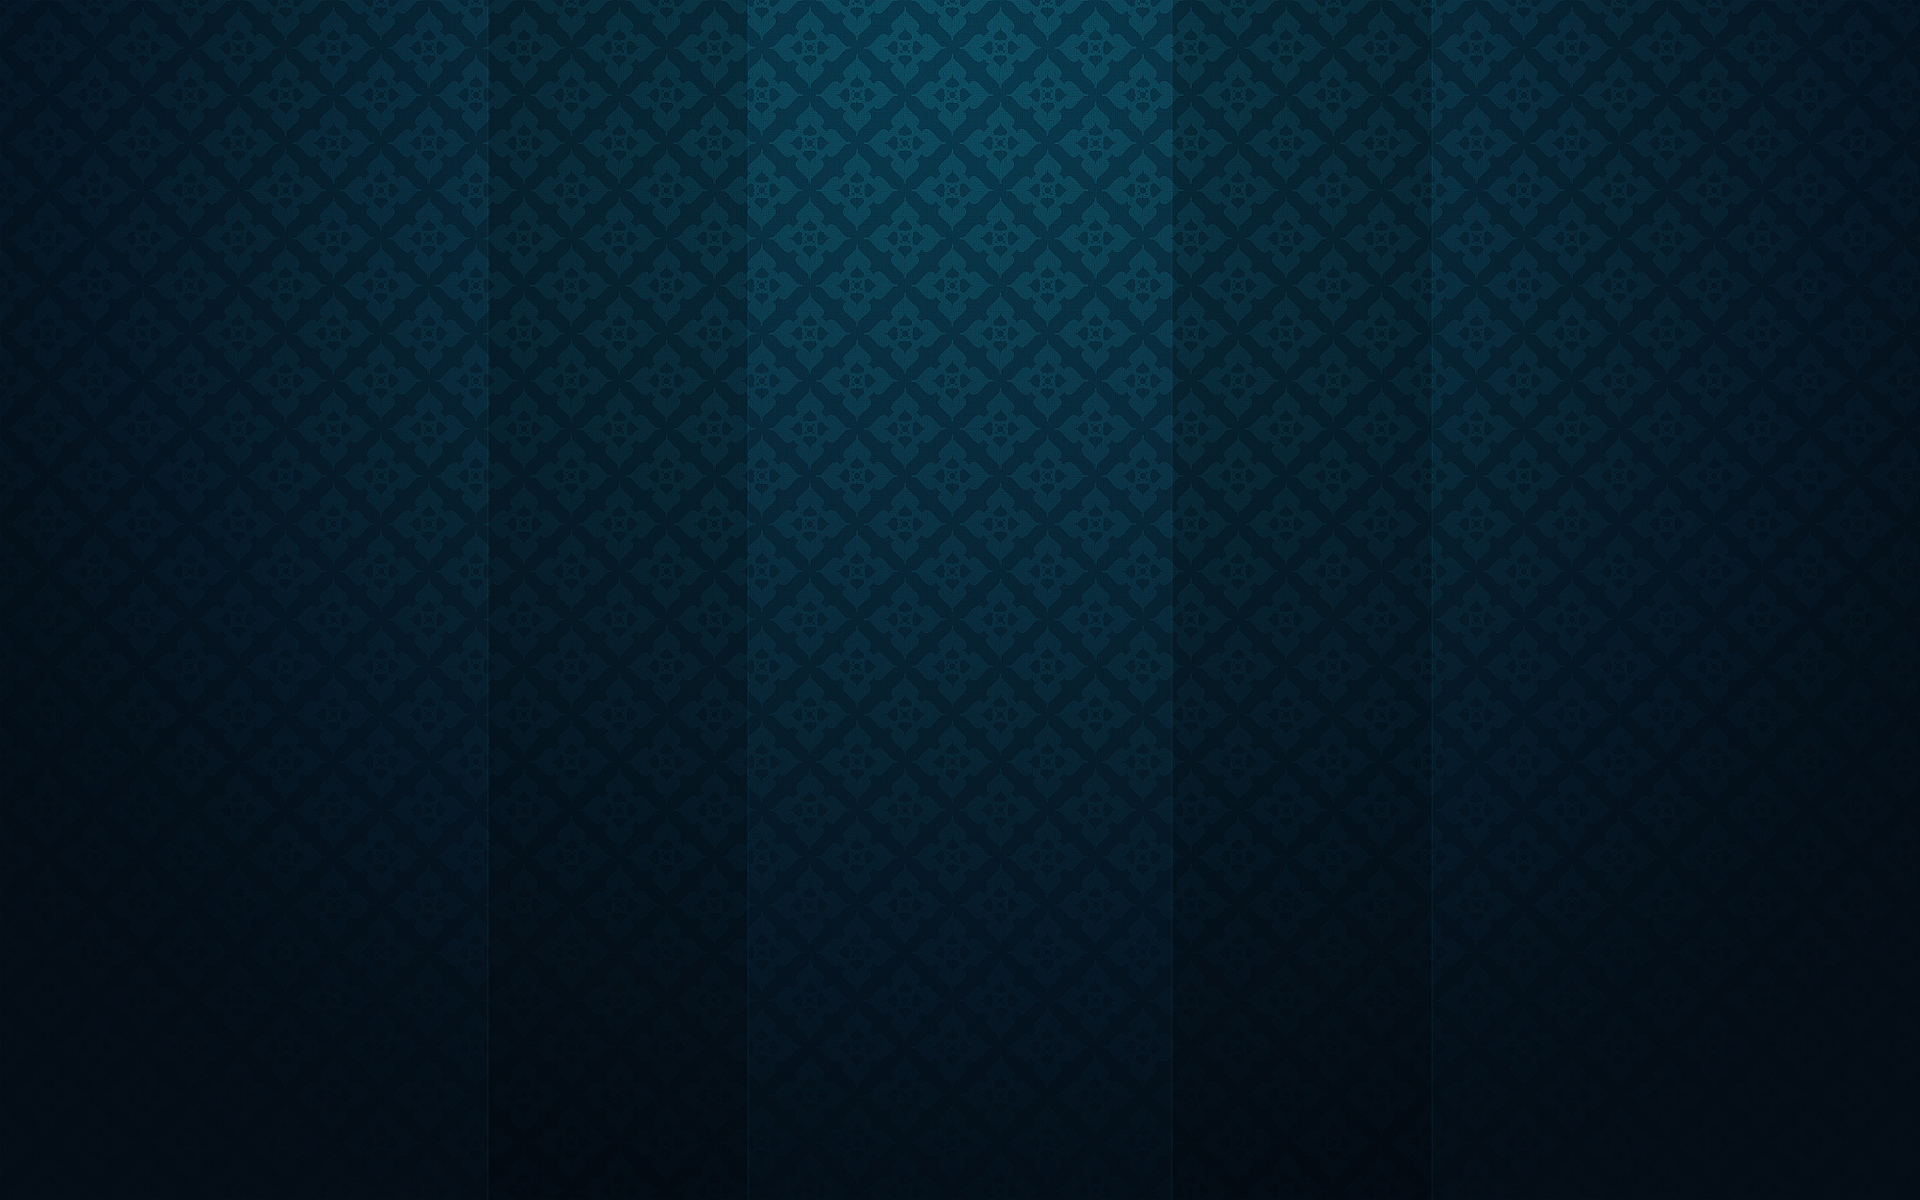 Simple Backgrounds 17285 1920x1200 px ~ HDWallSource.com